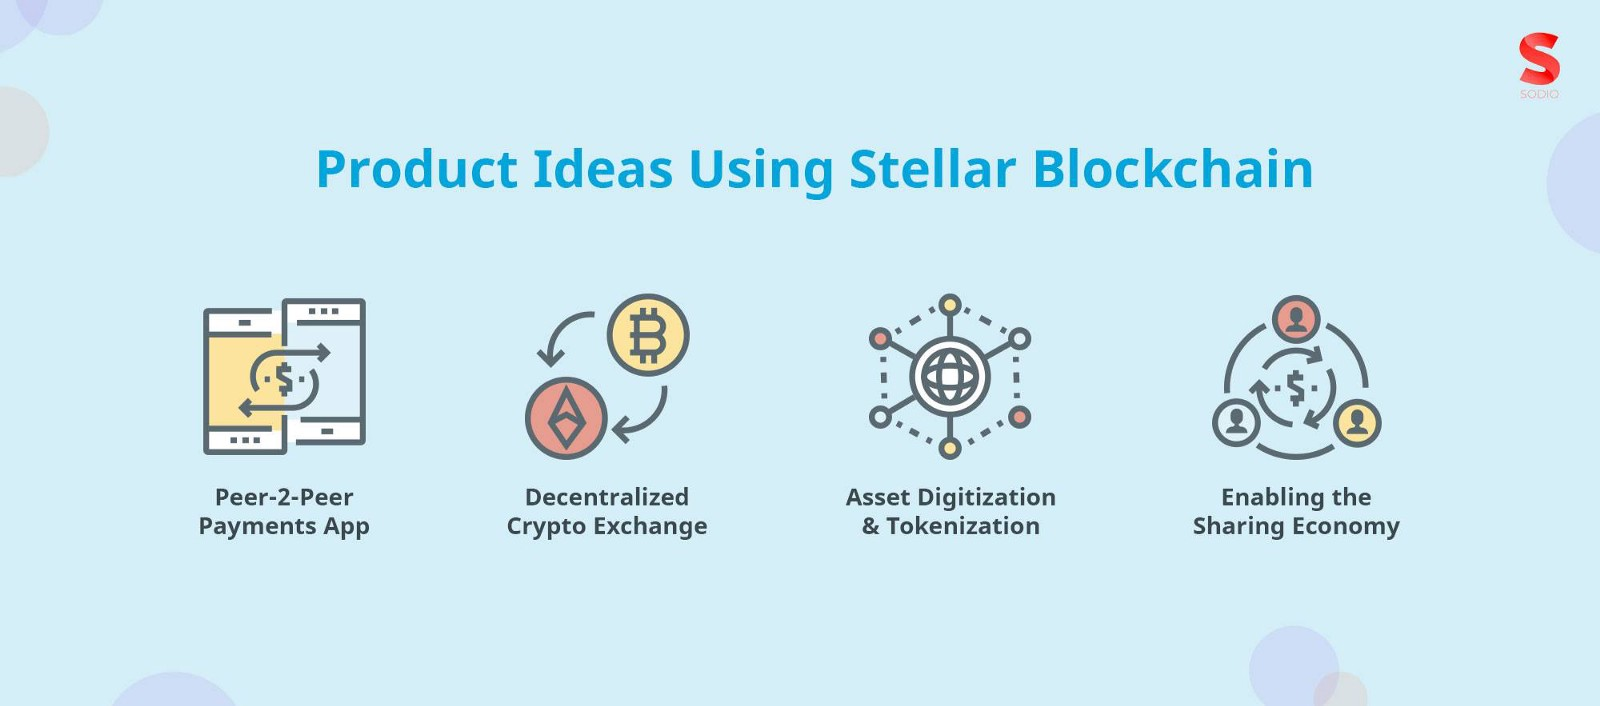 /stellar-blockchain-is-the-right-platform-for-building-next-gen-fintech-products-heres-why-47bcd3040b19 feature image